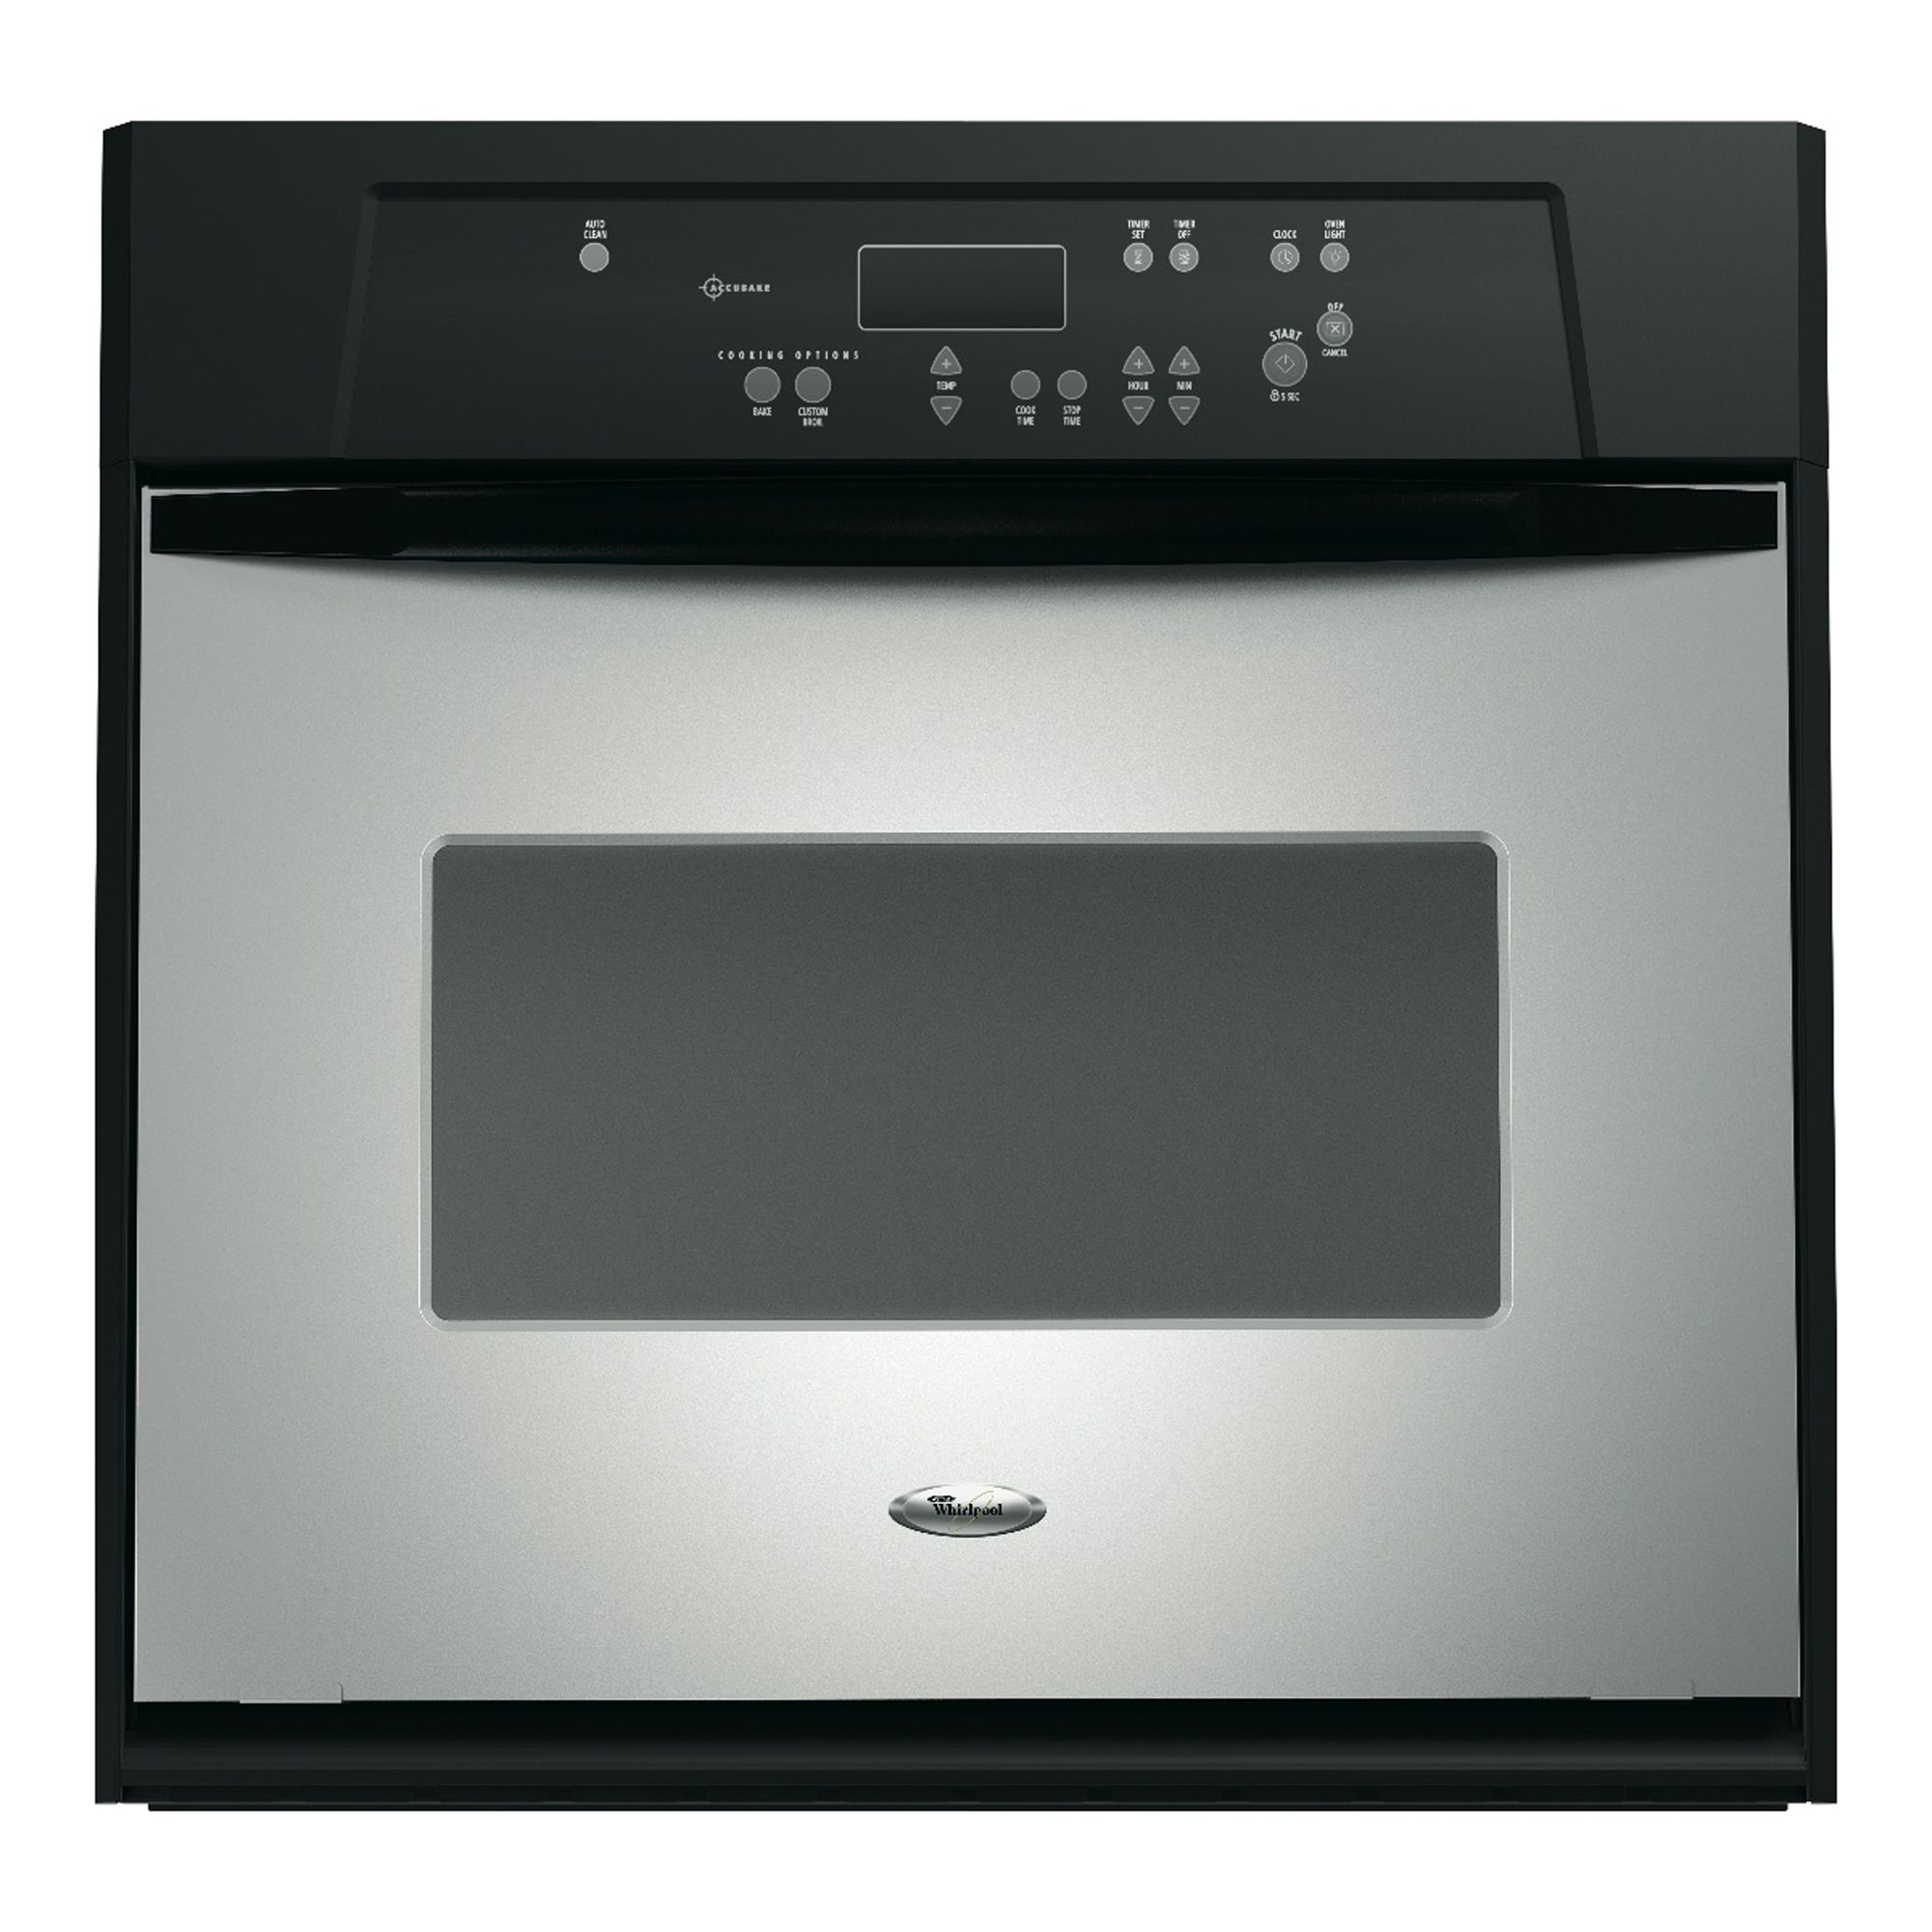 "Whirlpool 24"" Electric Self-Clean Wall Oven"